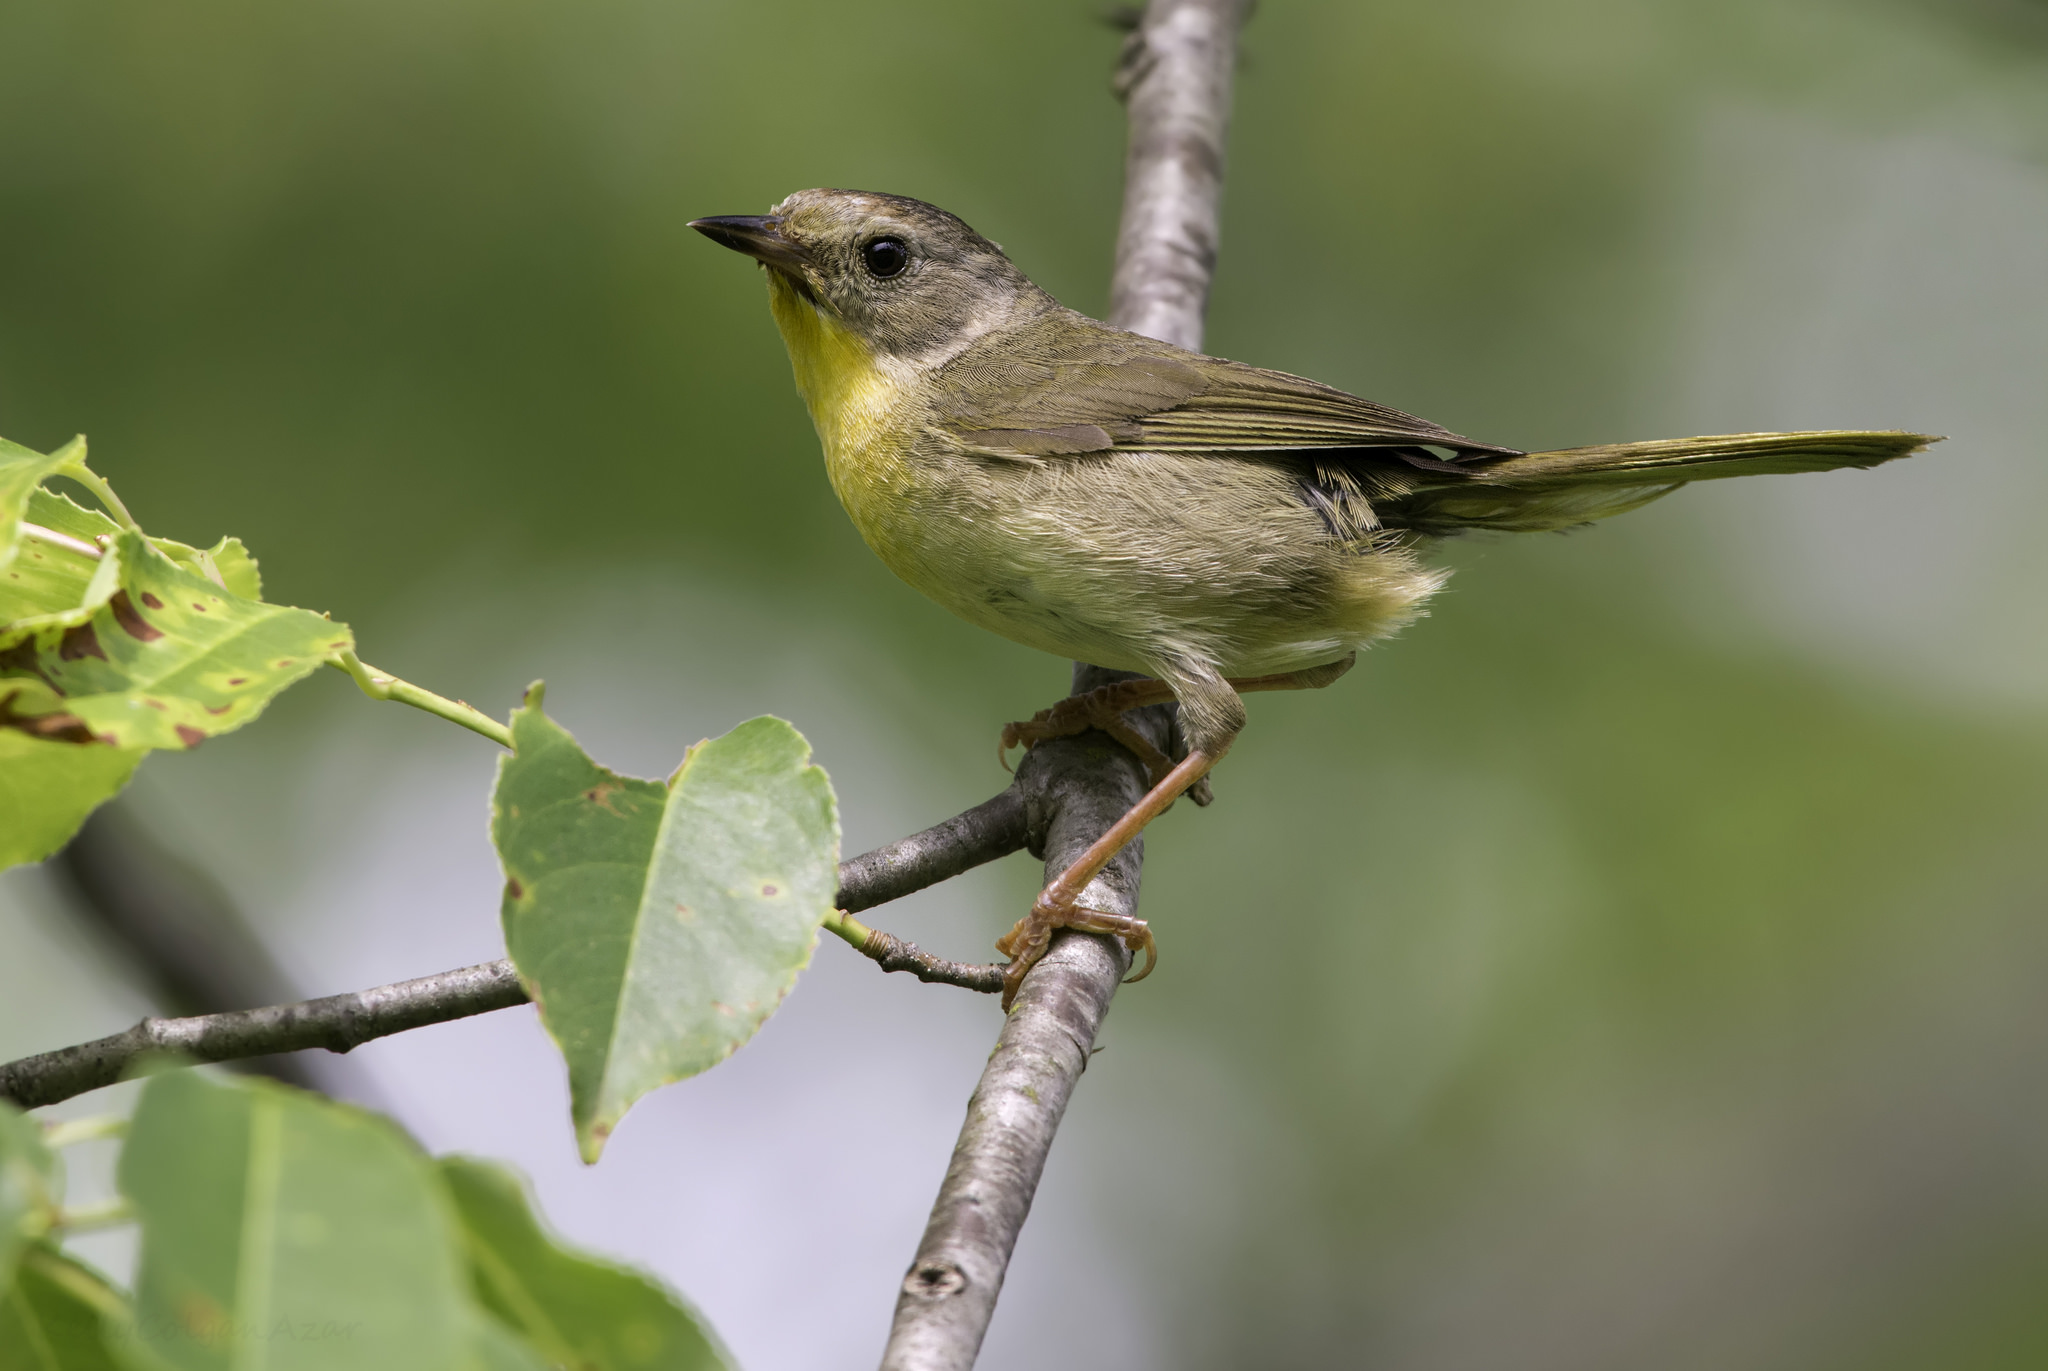 Small bird perched on a leafy branch